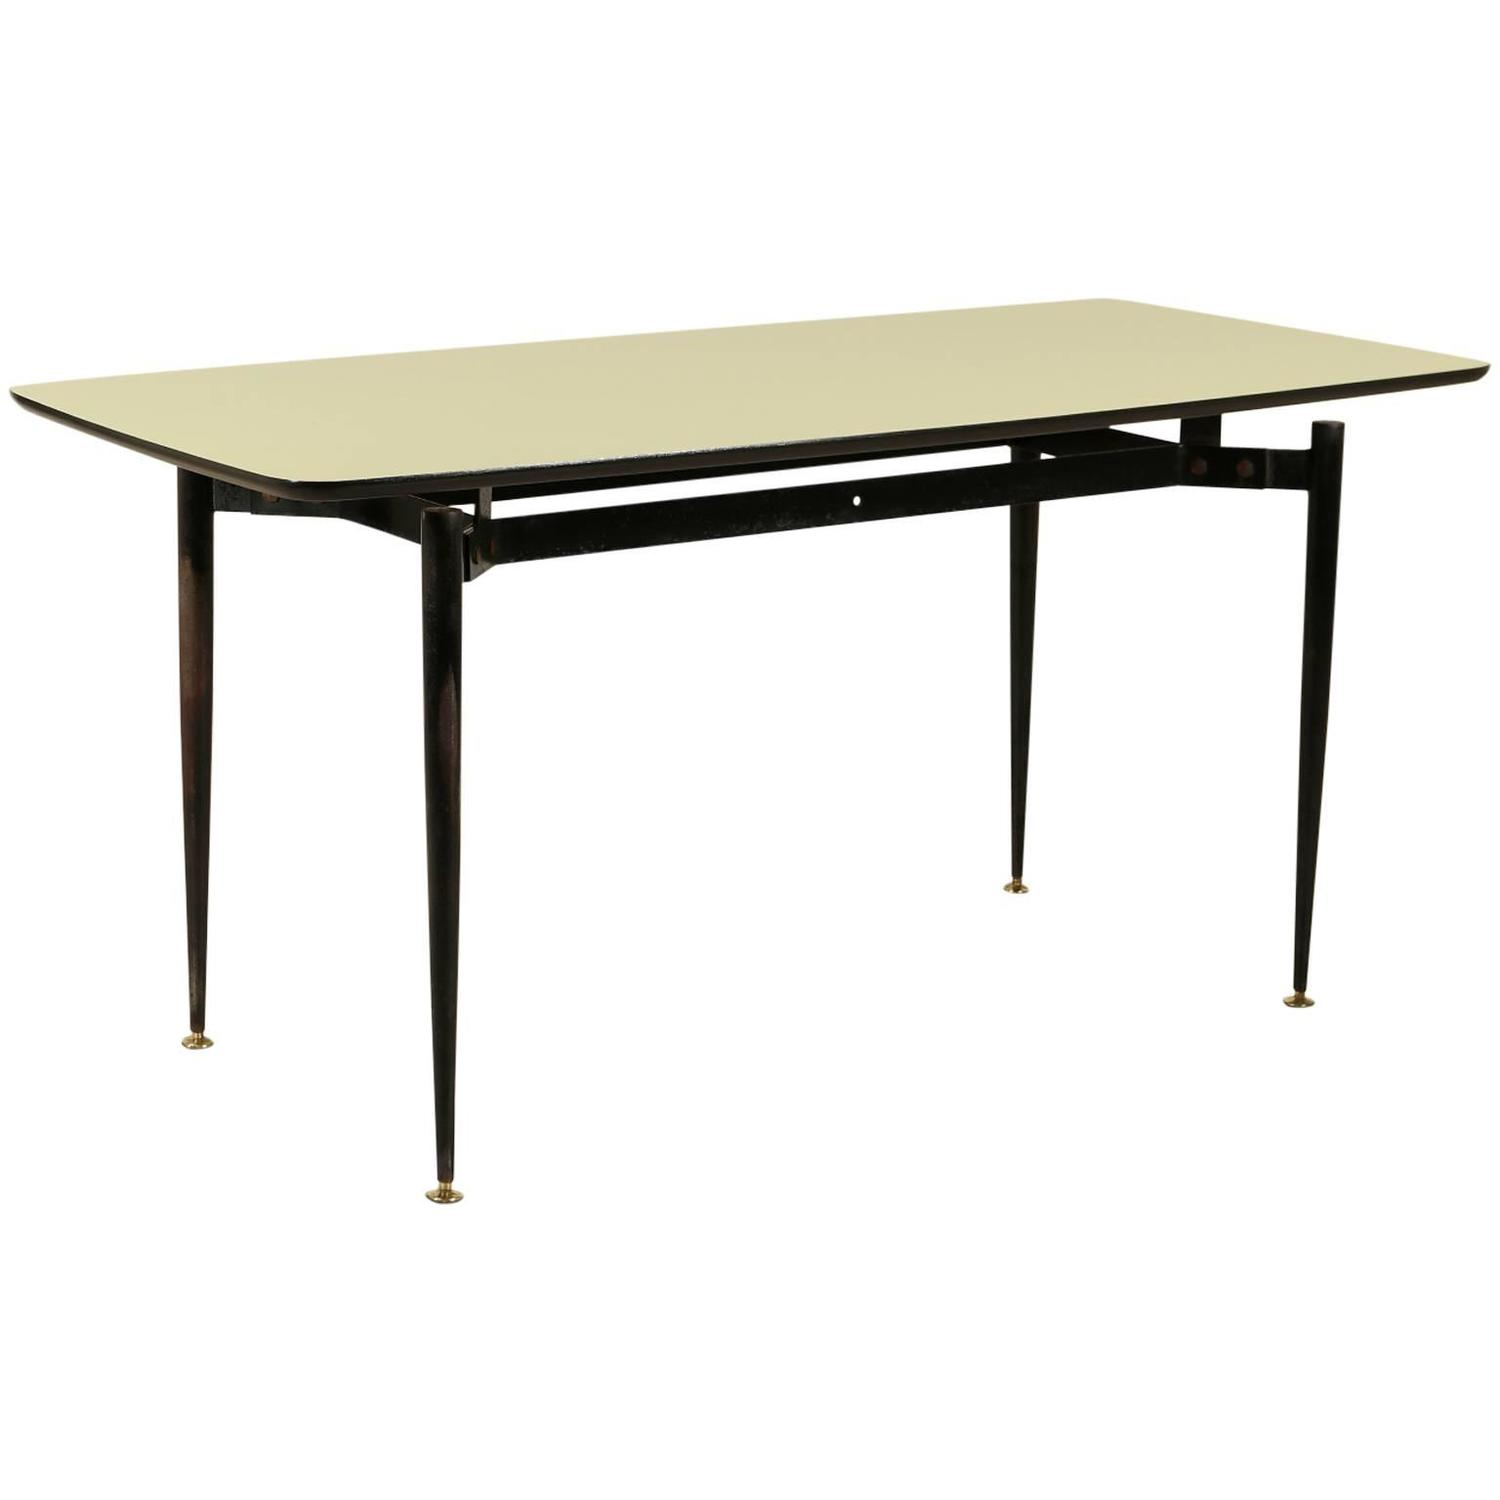 Metal Covered Tables : S metal and wooden table covered with formica at stdibs